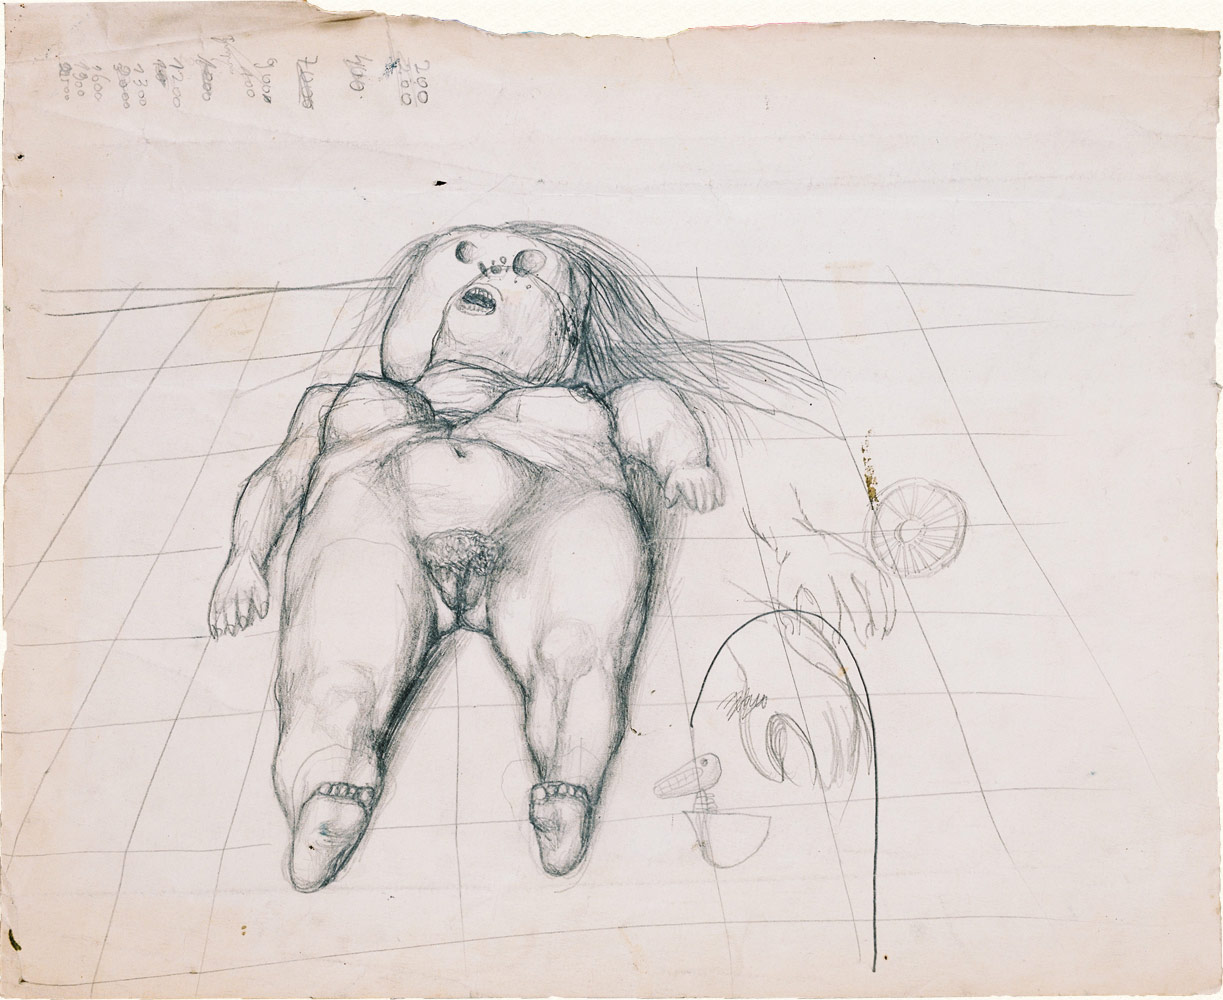 Dado's drawing: Study for The Crucifixion, 1955